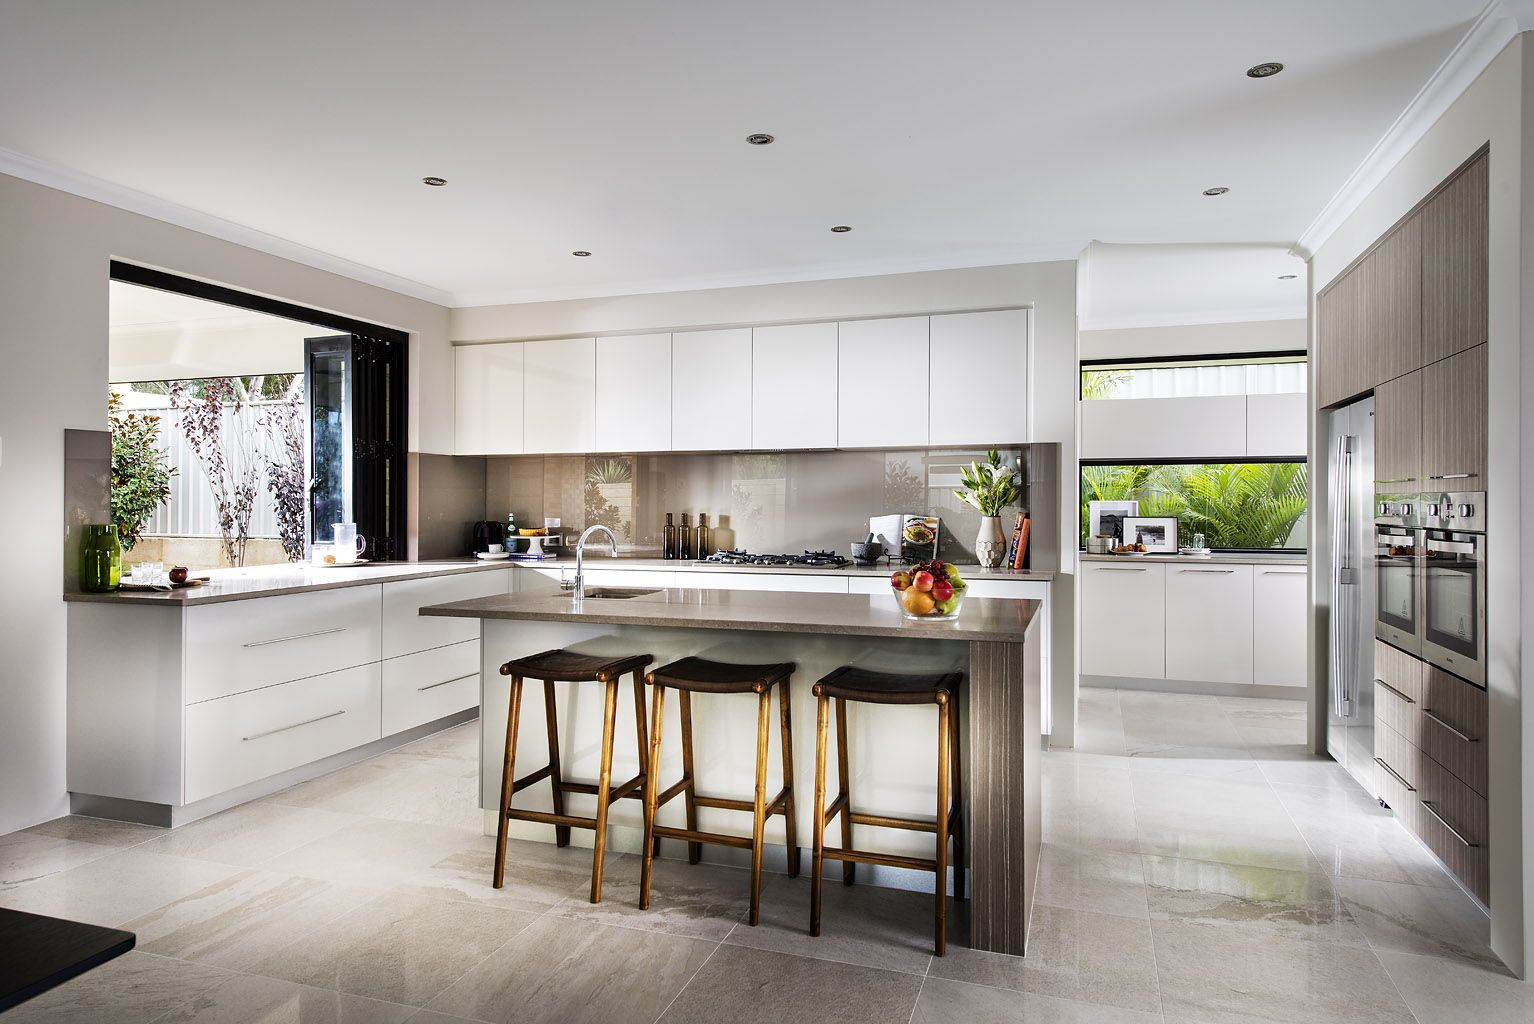 Nine Kitchen Dale Alcock KItchen with scullery - love the bifold ...